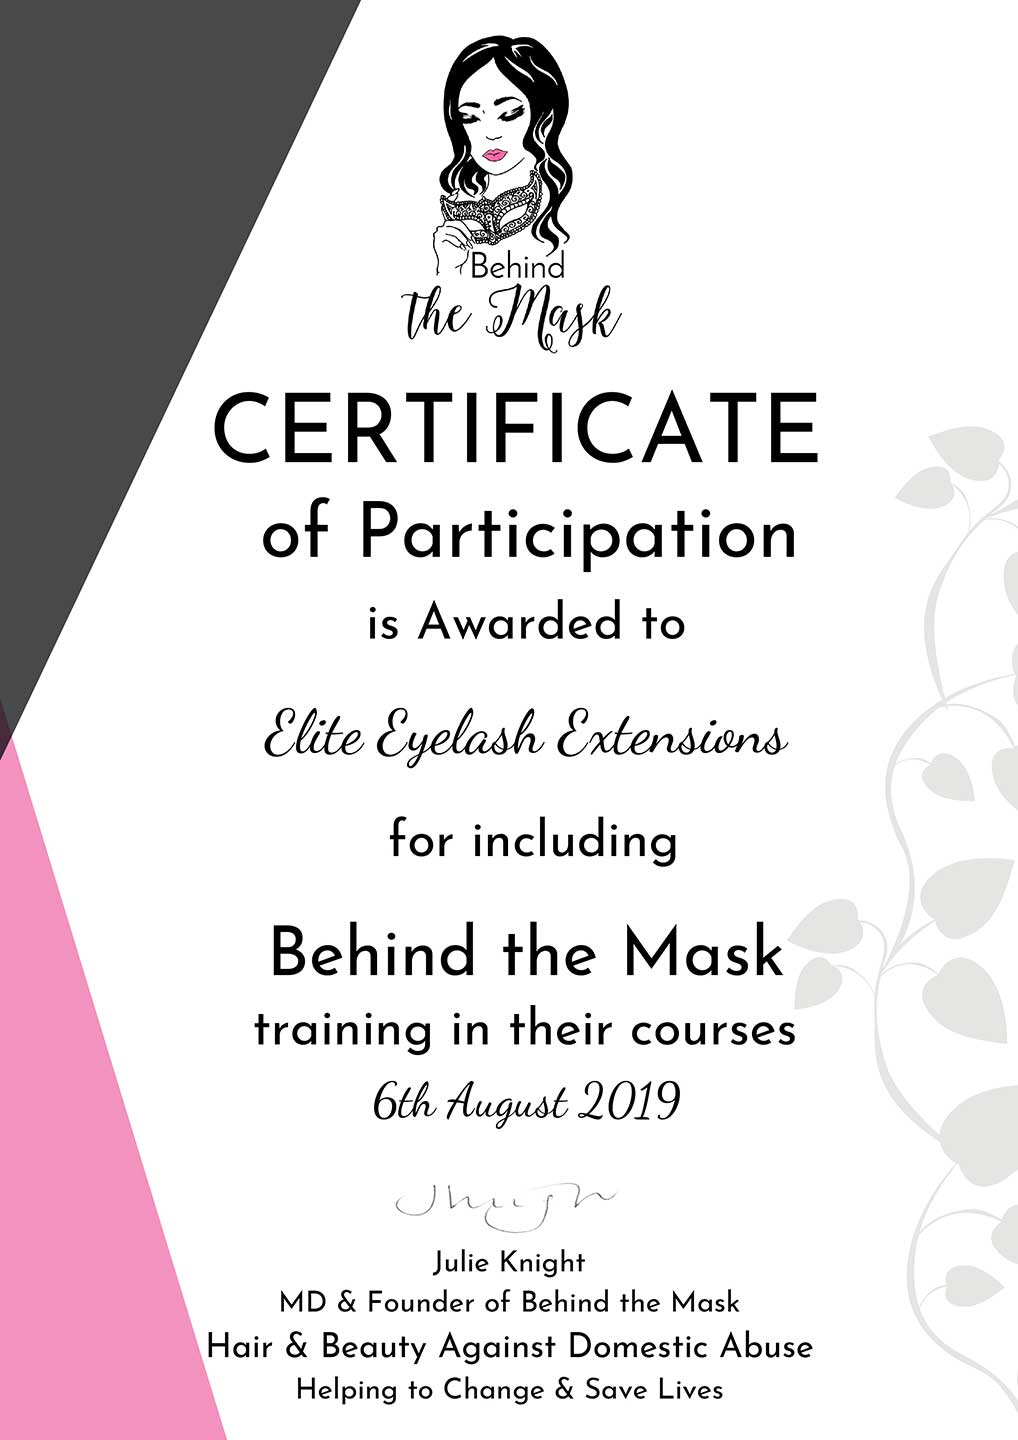 Elite-Eyelash-Extensions-Training-Academy-Behind-The-Mask-certificate-1